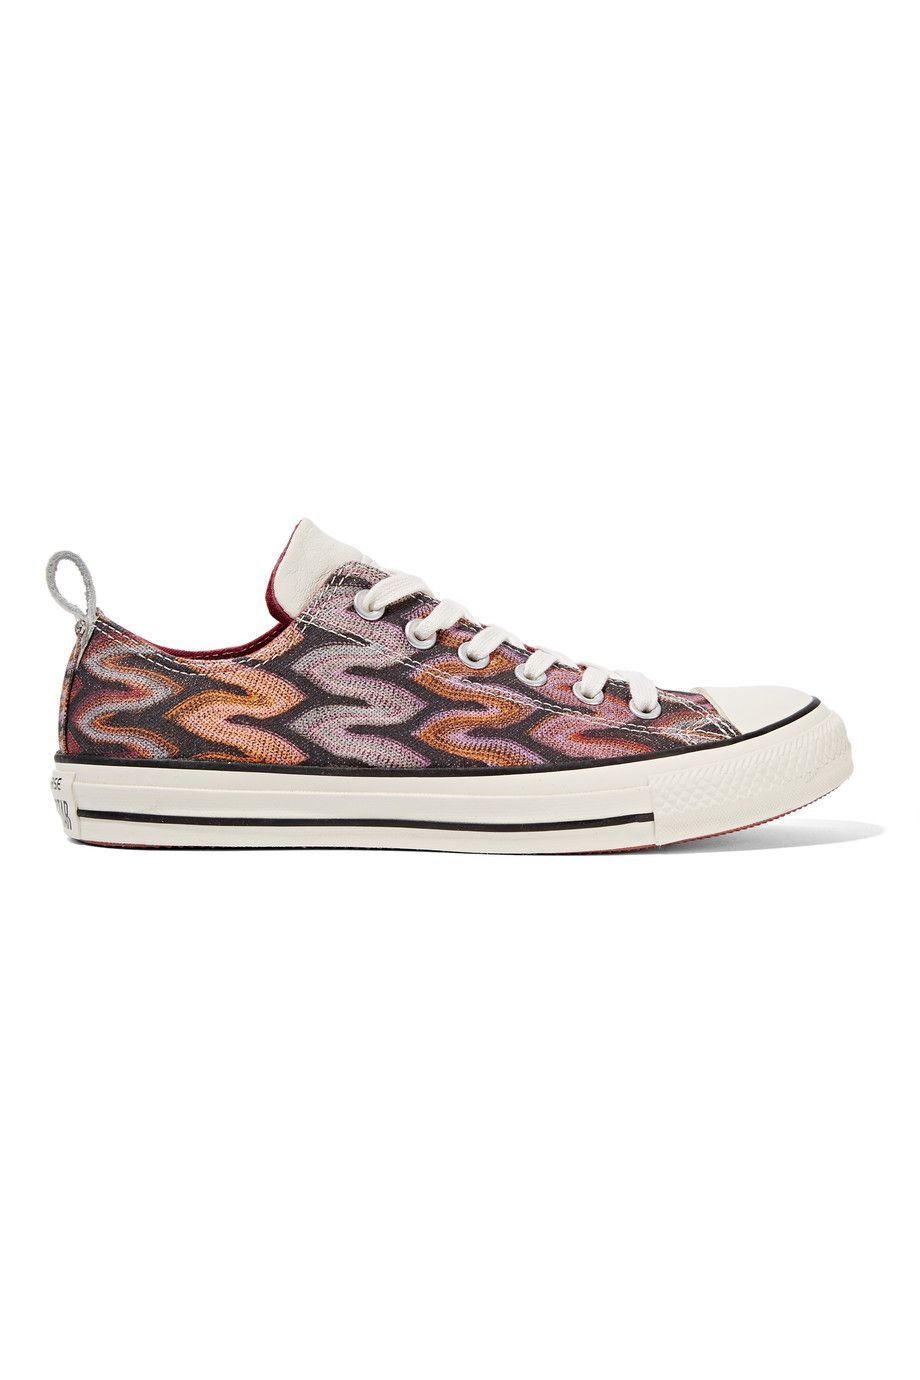 brand new b7432 27548 Converse + Missoni Chuck Taylor All Star leather-trimmed metallic crochet- knit sneakers at net-a-porter.com